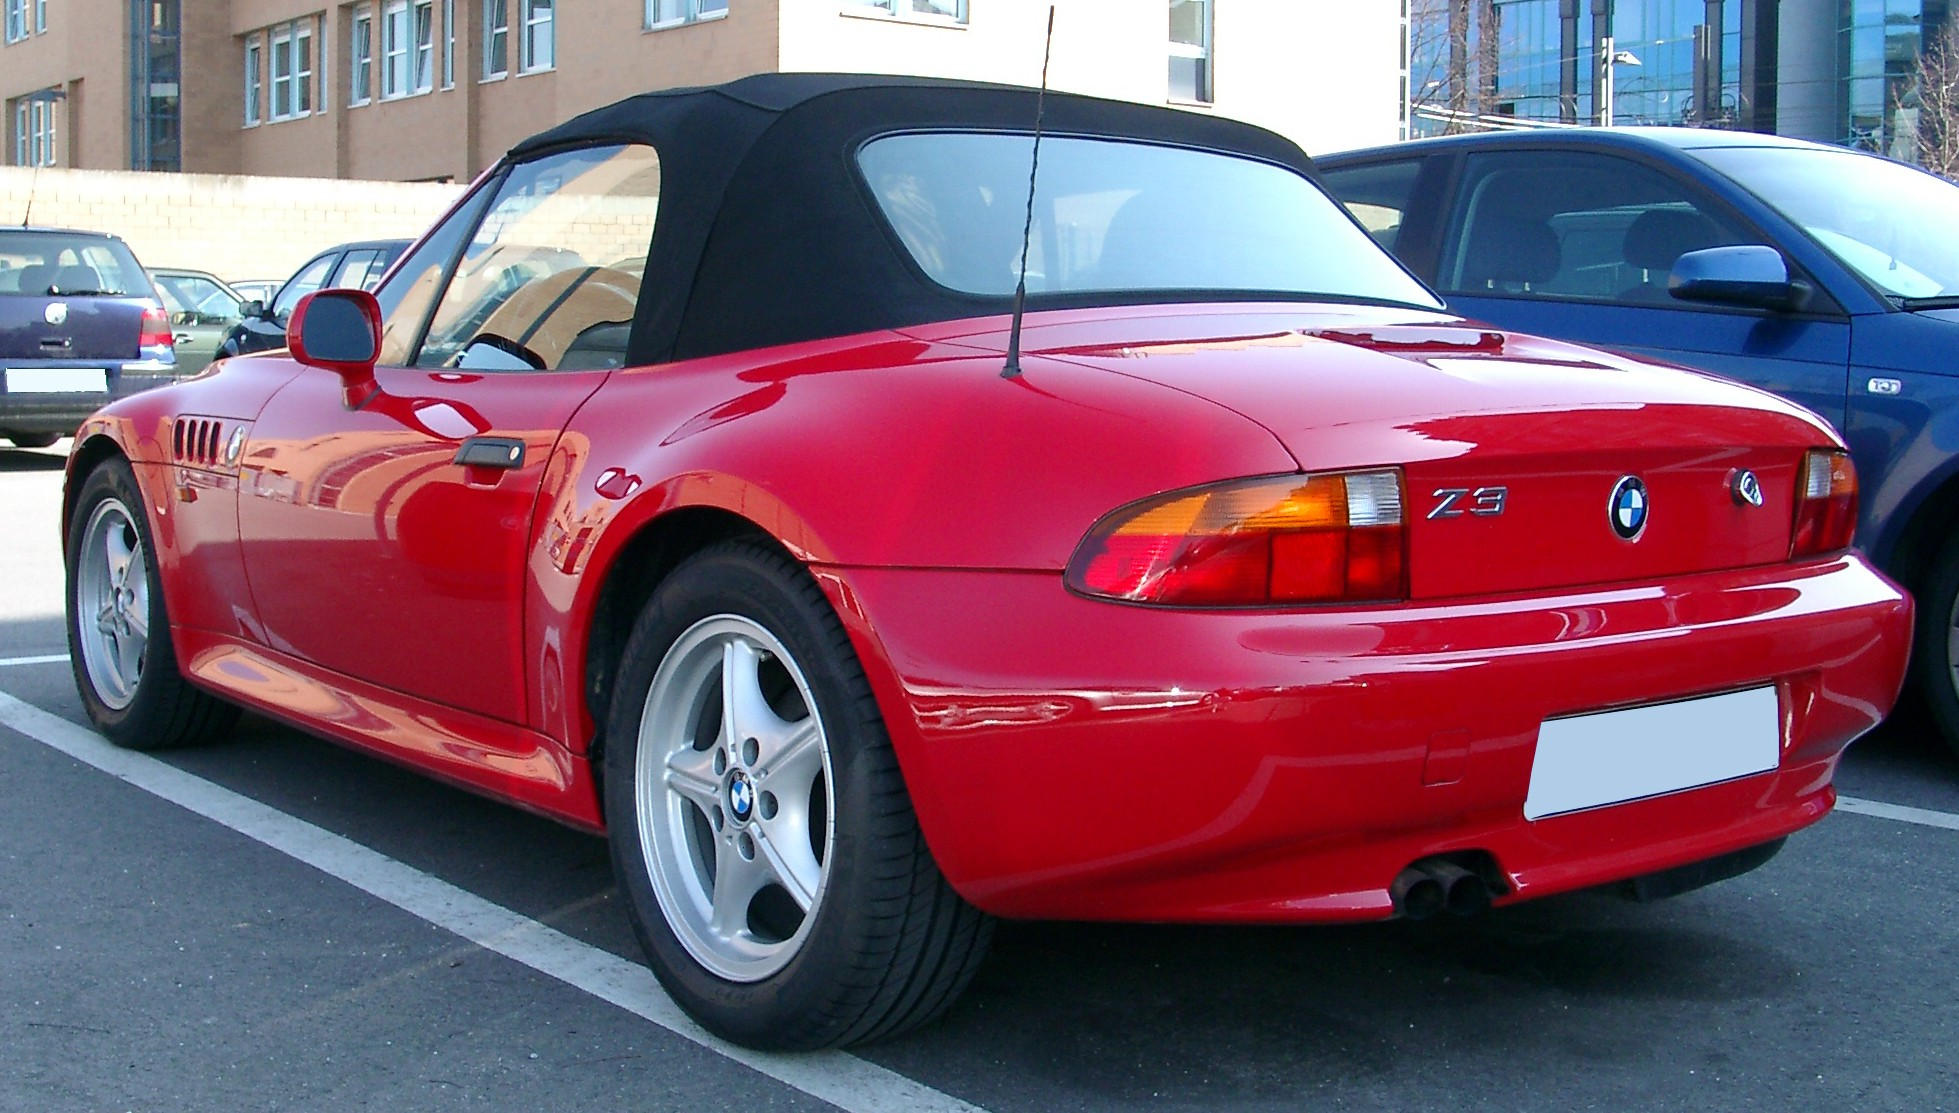 bmw z3 roadster 1997 pictures #6